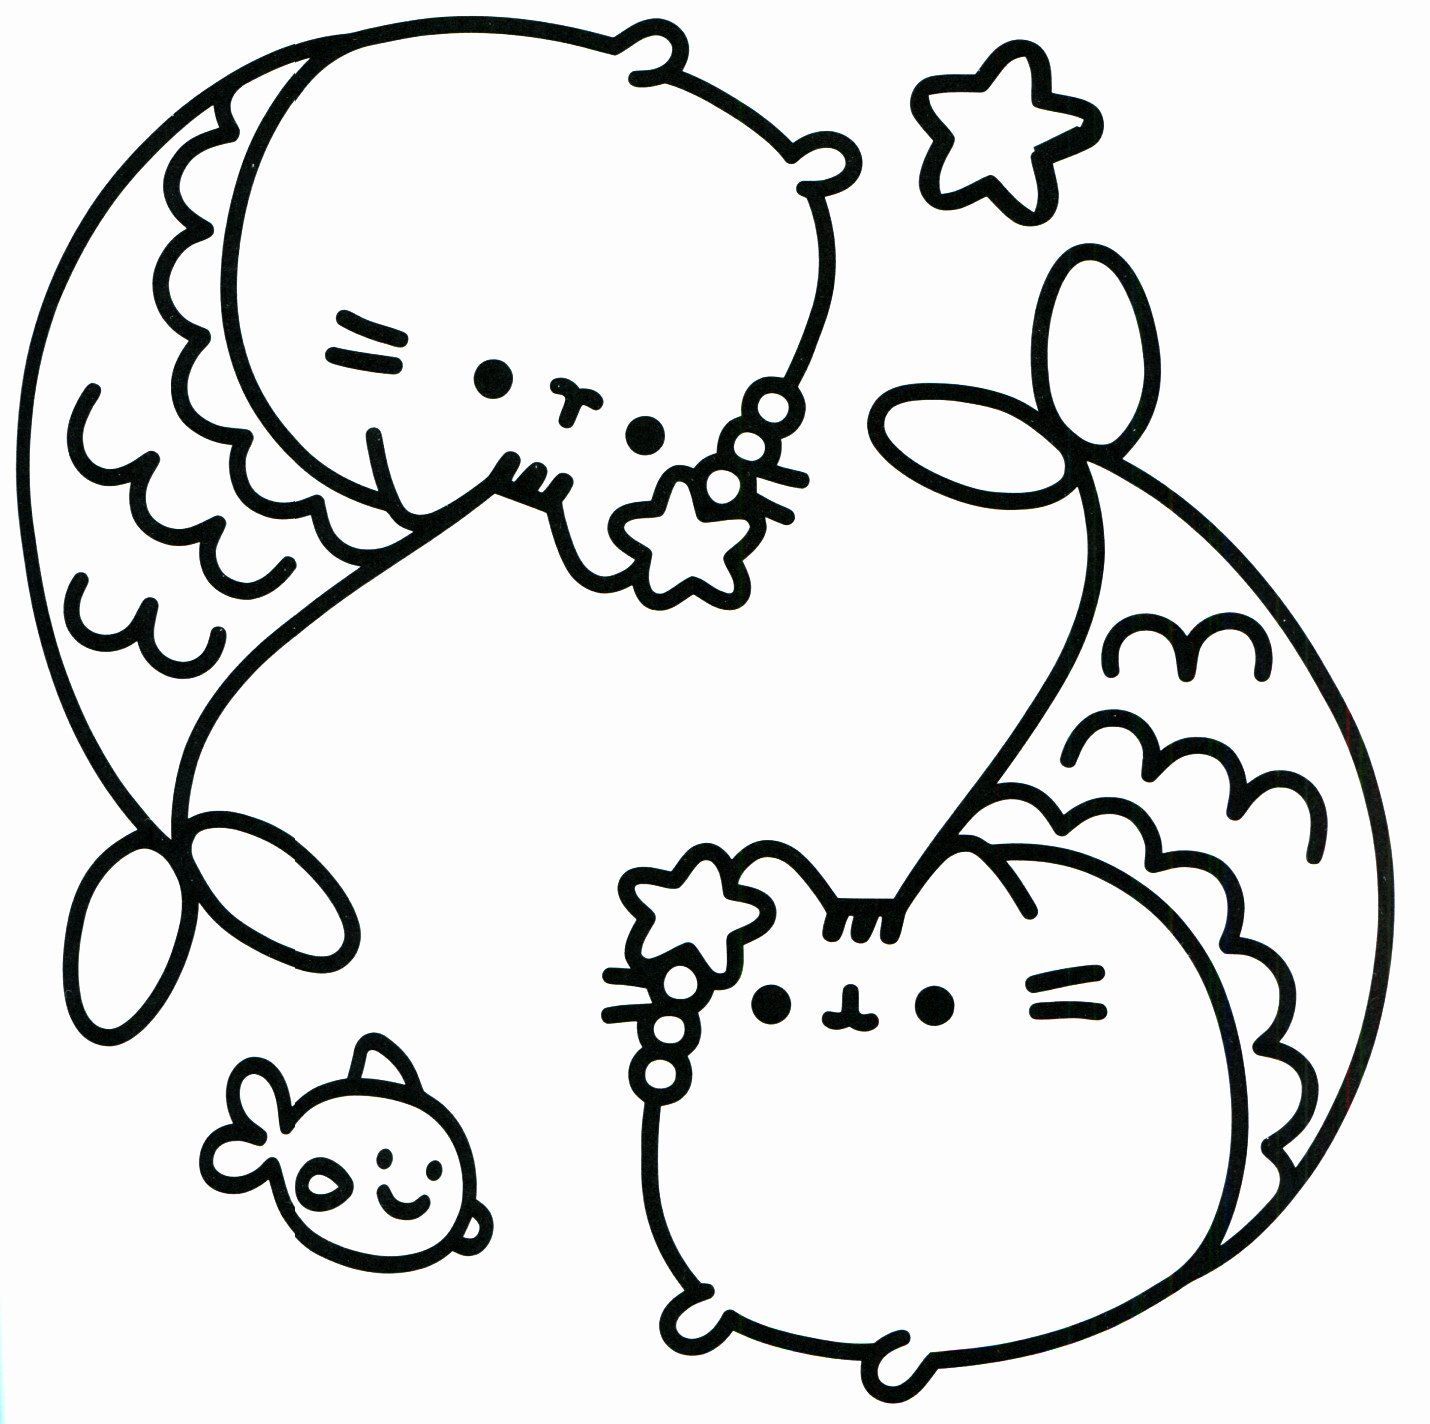 Kawaii Coloring Pages Animals Unique Apollinaire Leanna Free Coloring Pages Unicorn S In 2020 Unicorn Coloring Pages Hello Kitty Colouring Pages Mermaid Coloring Pages